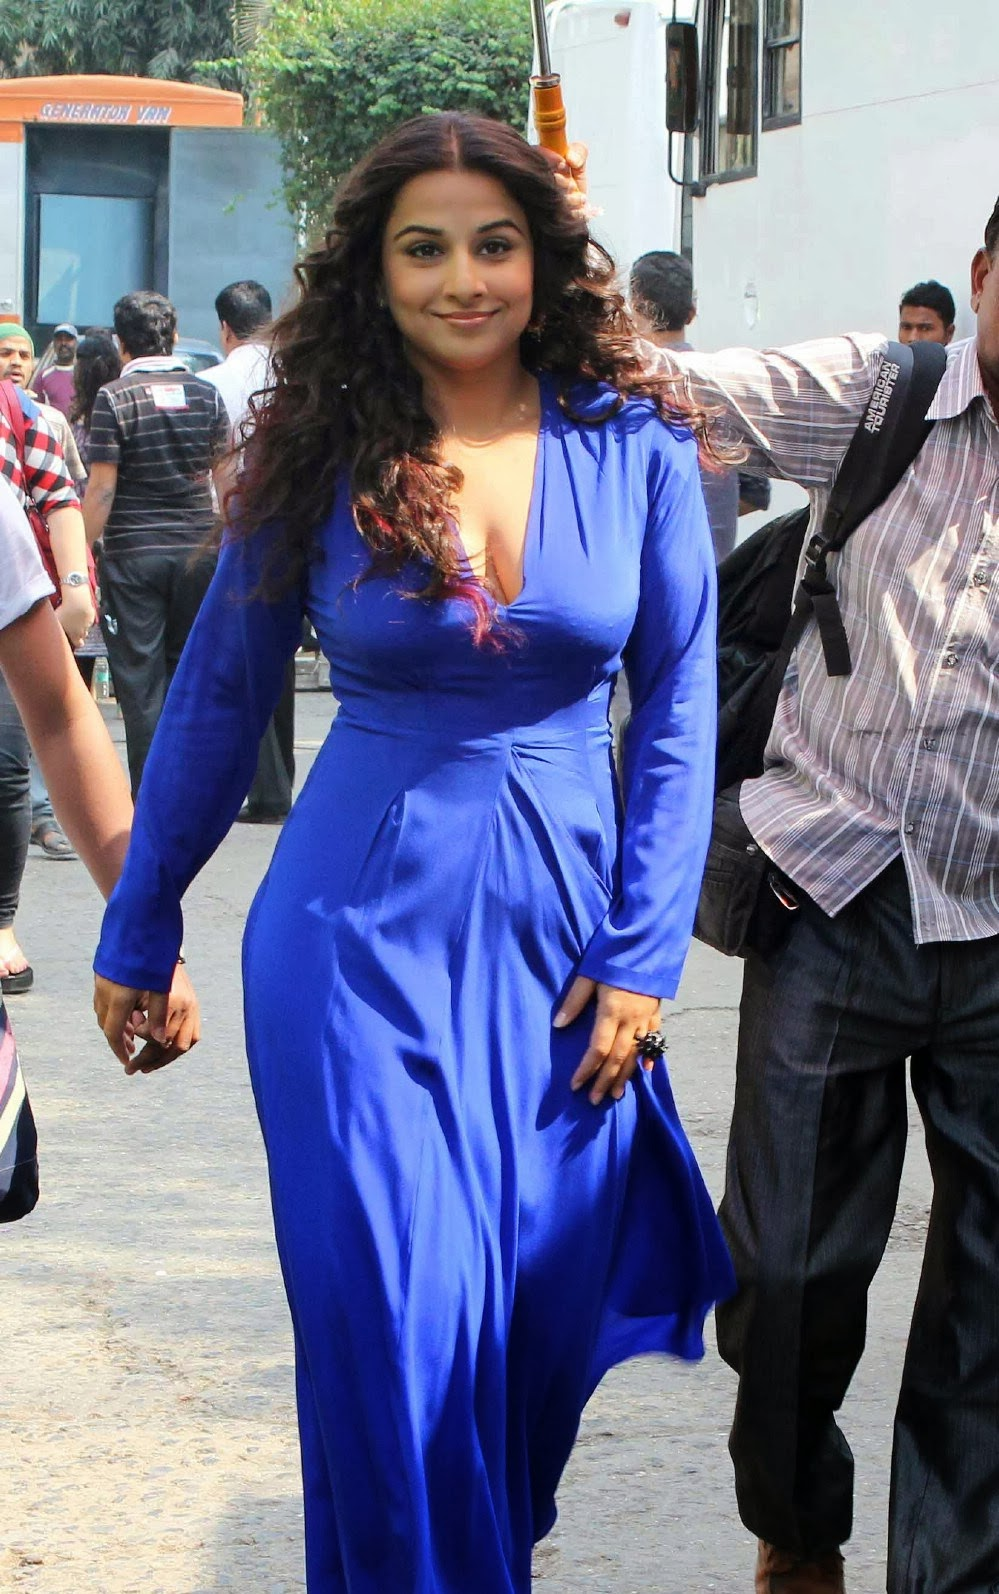 Vidya balan spicy hot Melons In Tight blue dress